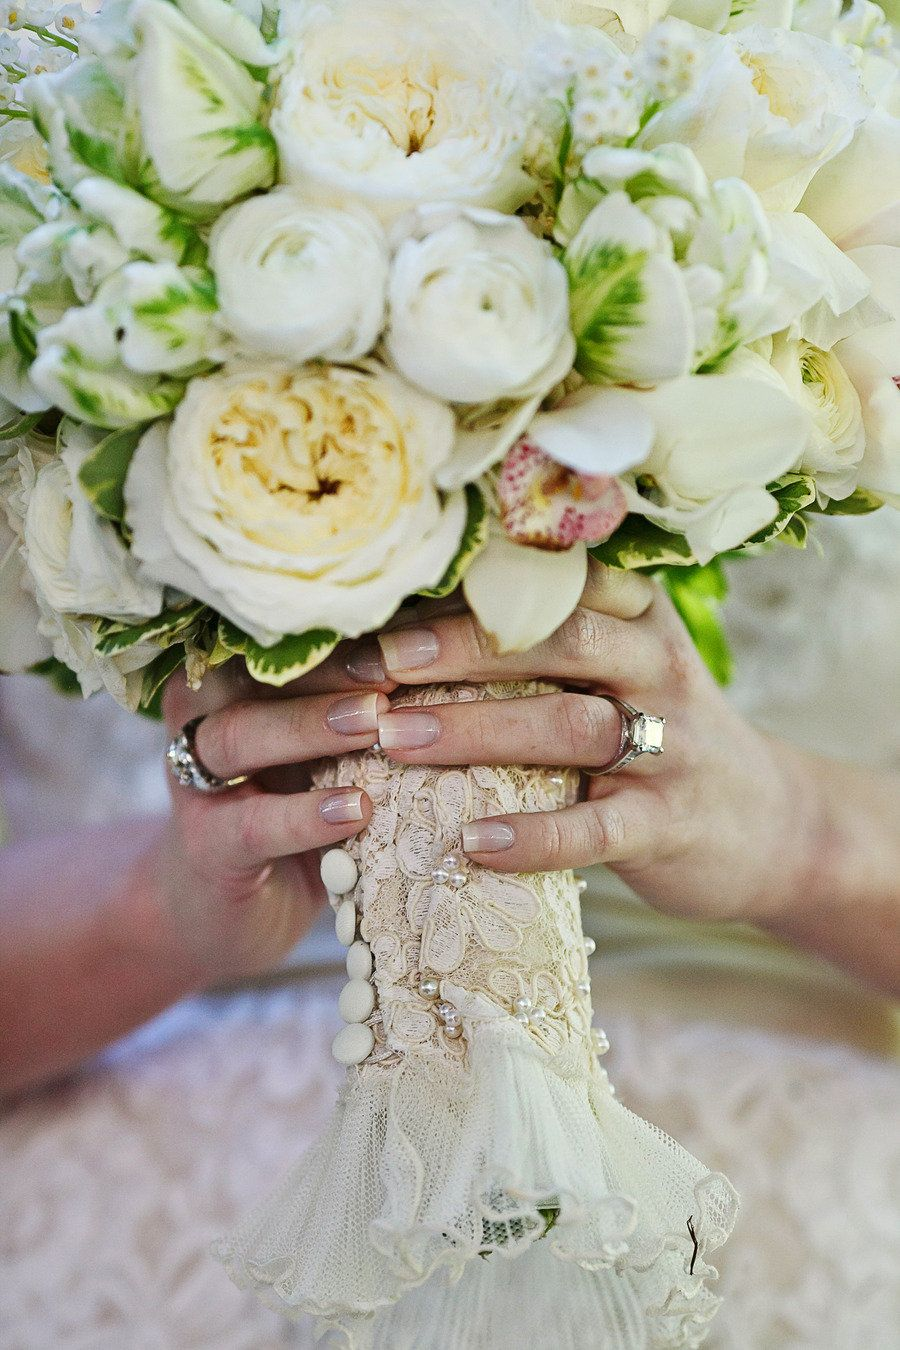 bouquet wrap, the sleeve from her mother's gown!